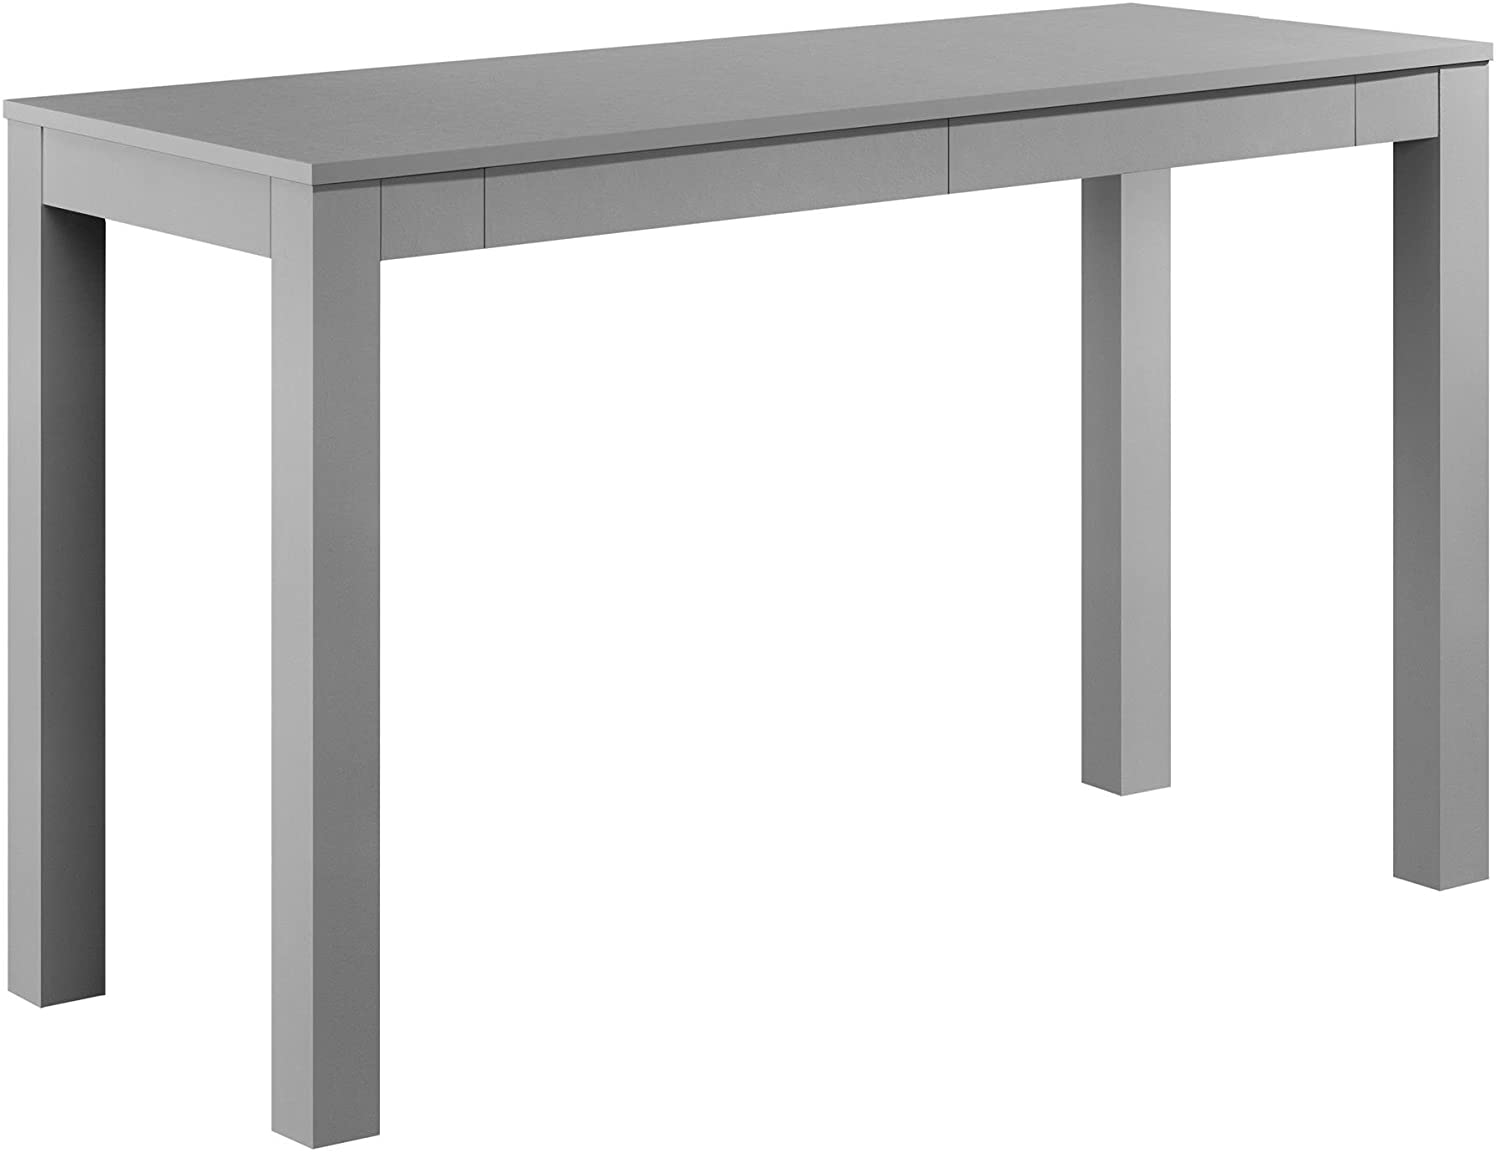 Ameriwood Home Parsons Xl Desk with 2 Drawers, Gray Gray